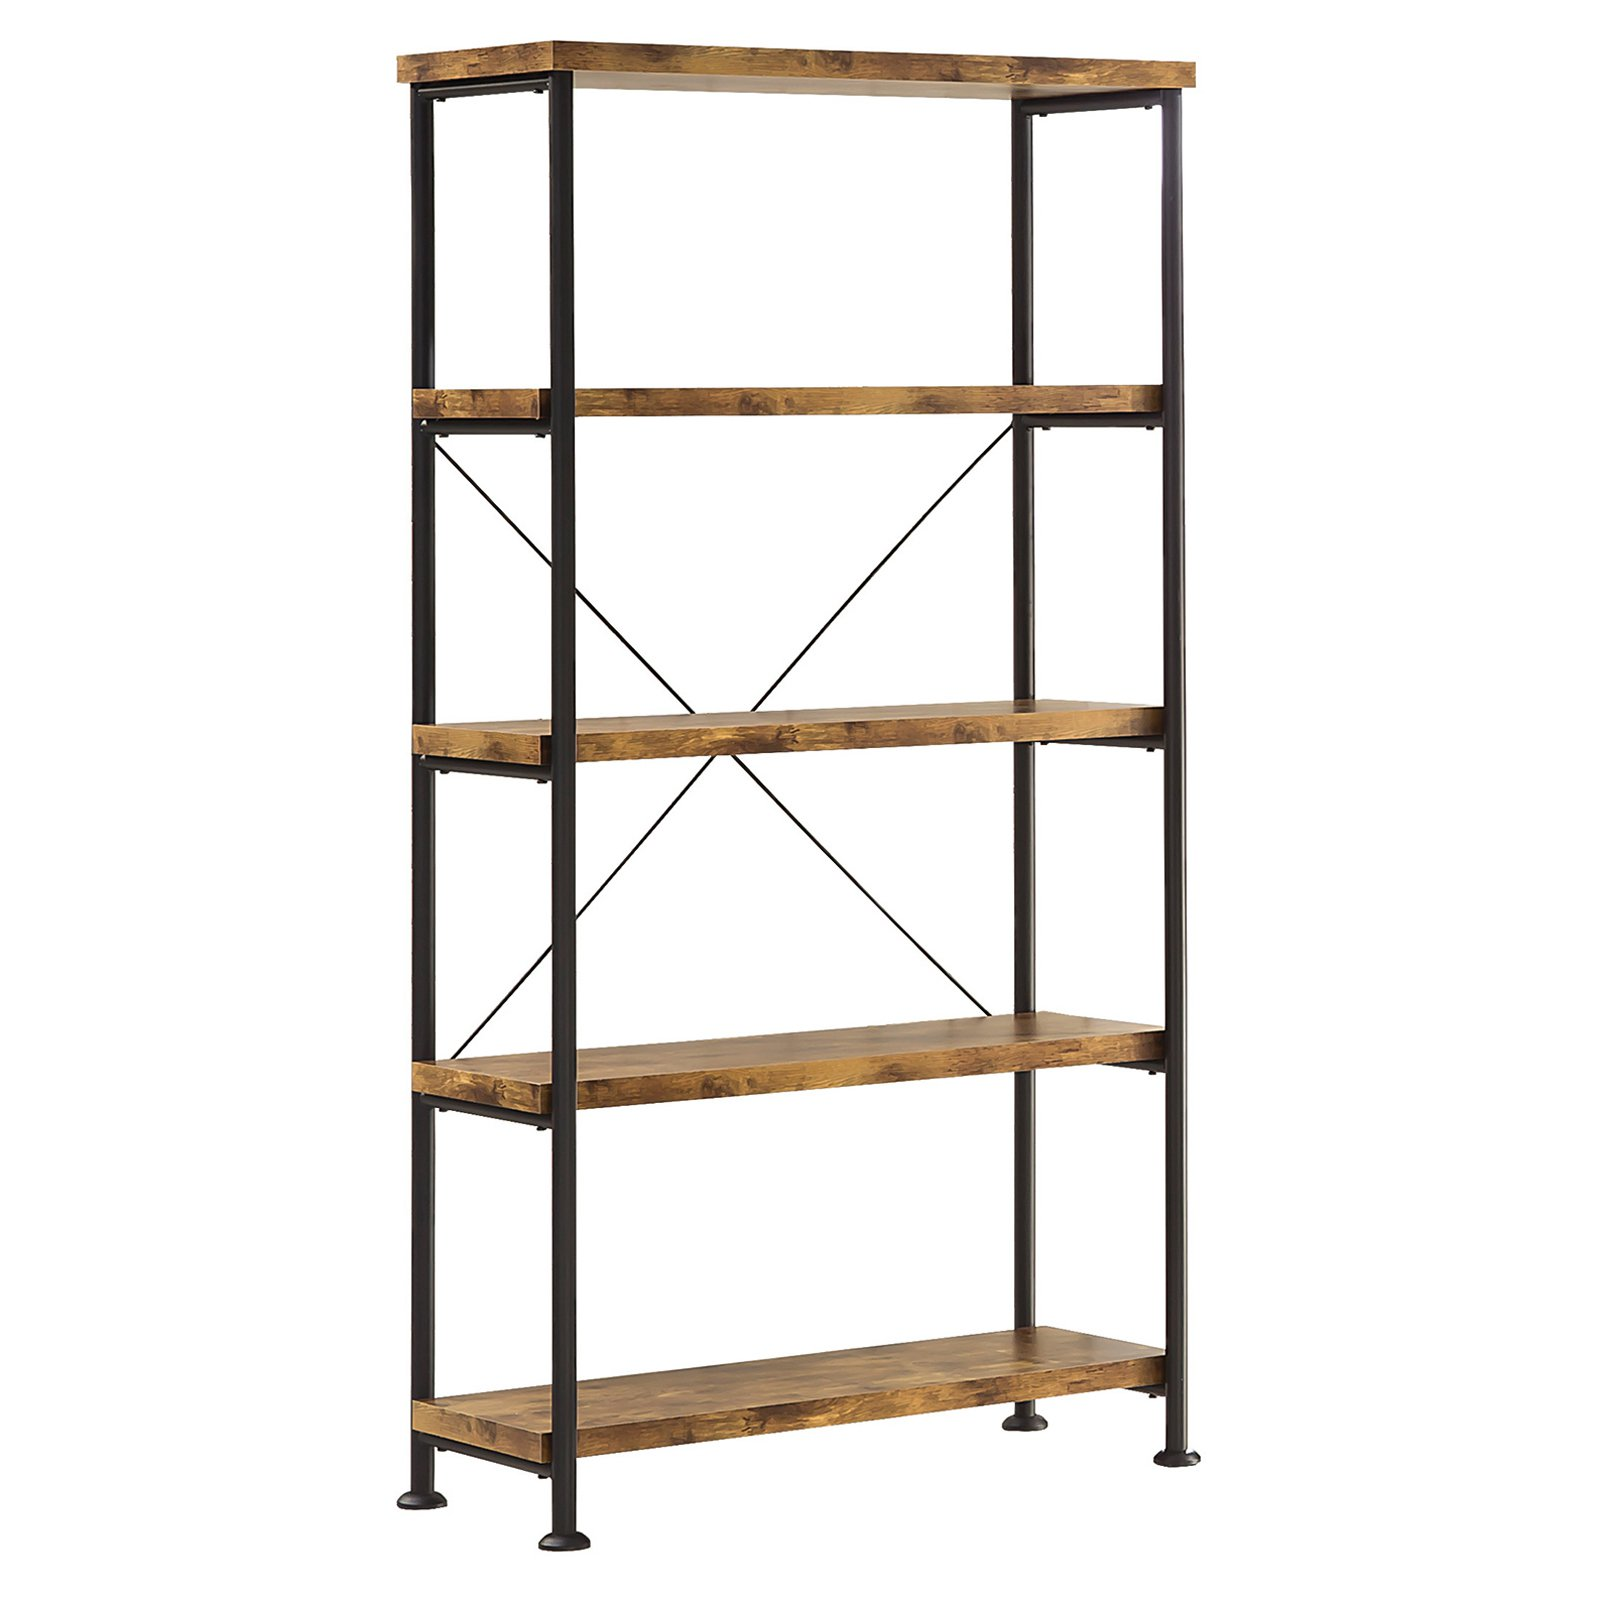 Coaster Company 4 Tier Bookcase, Salvaged Cabin and Black Metal